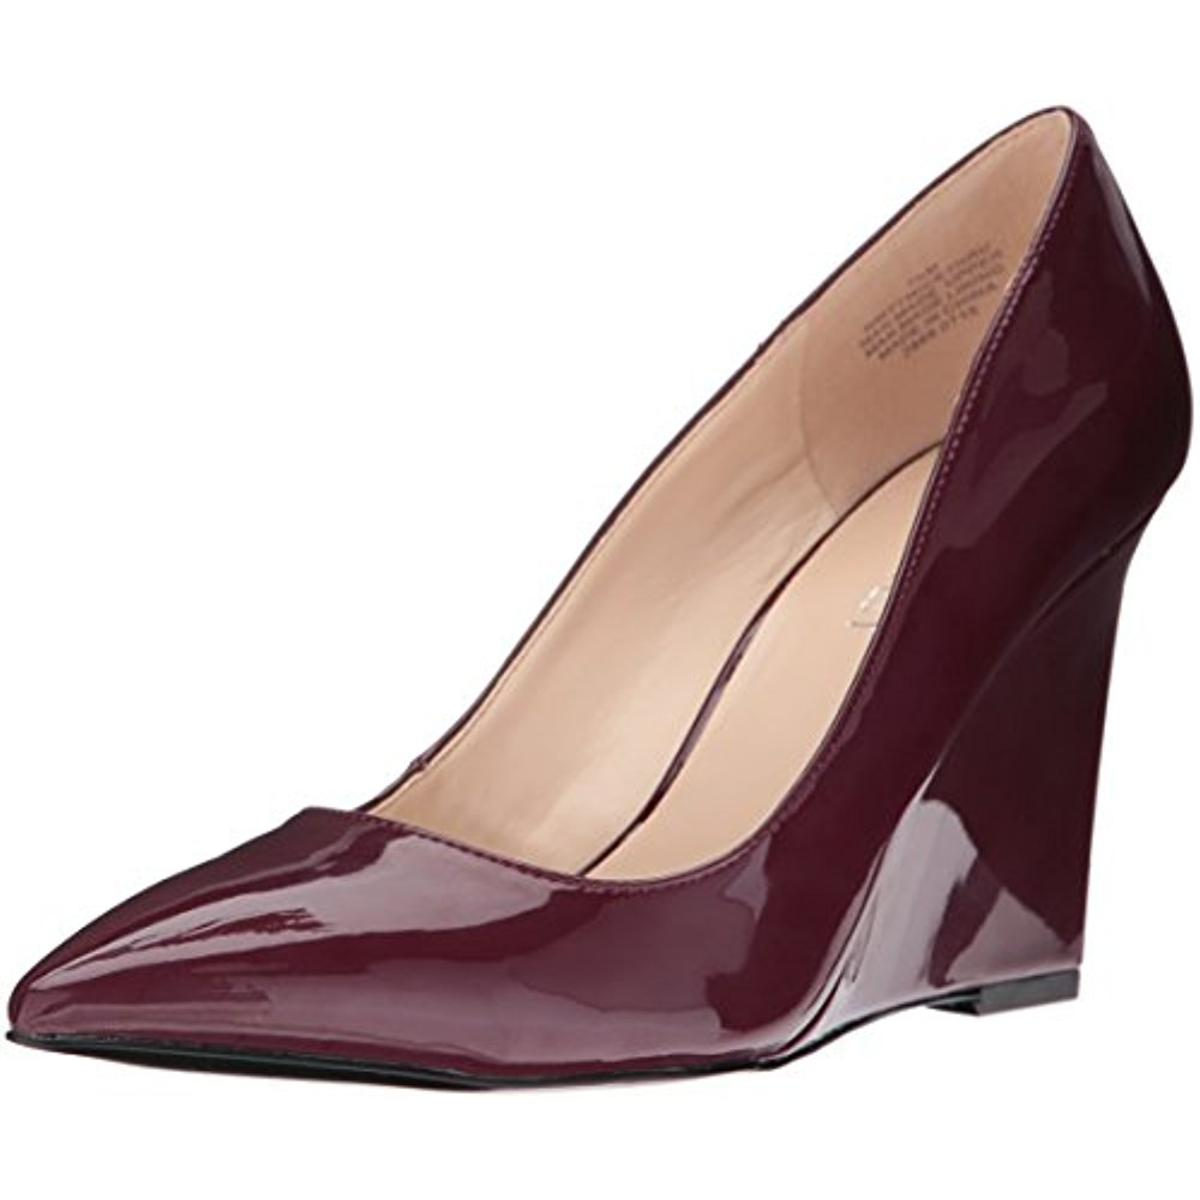 nine west 0972 womens twicethru patent pointed toe wedge